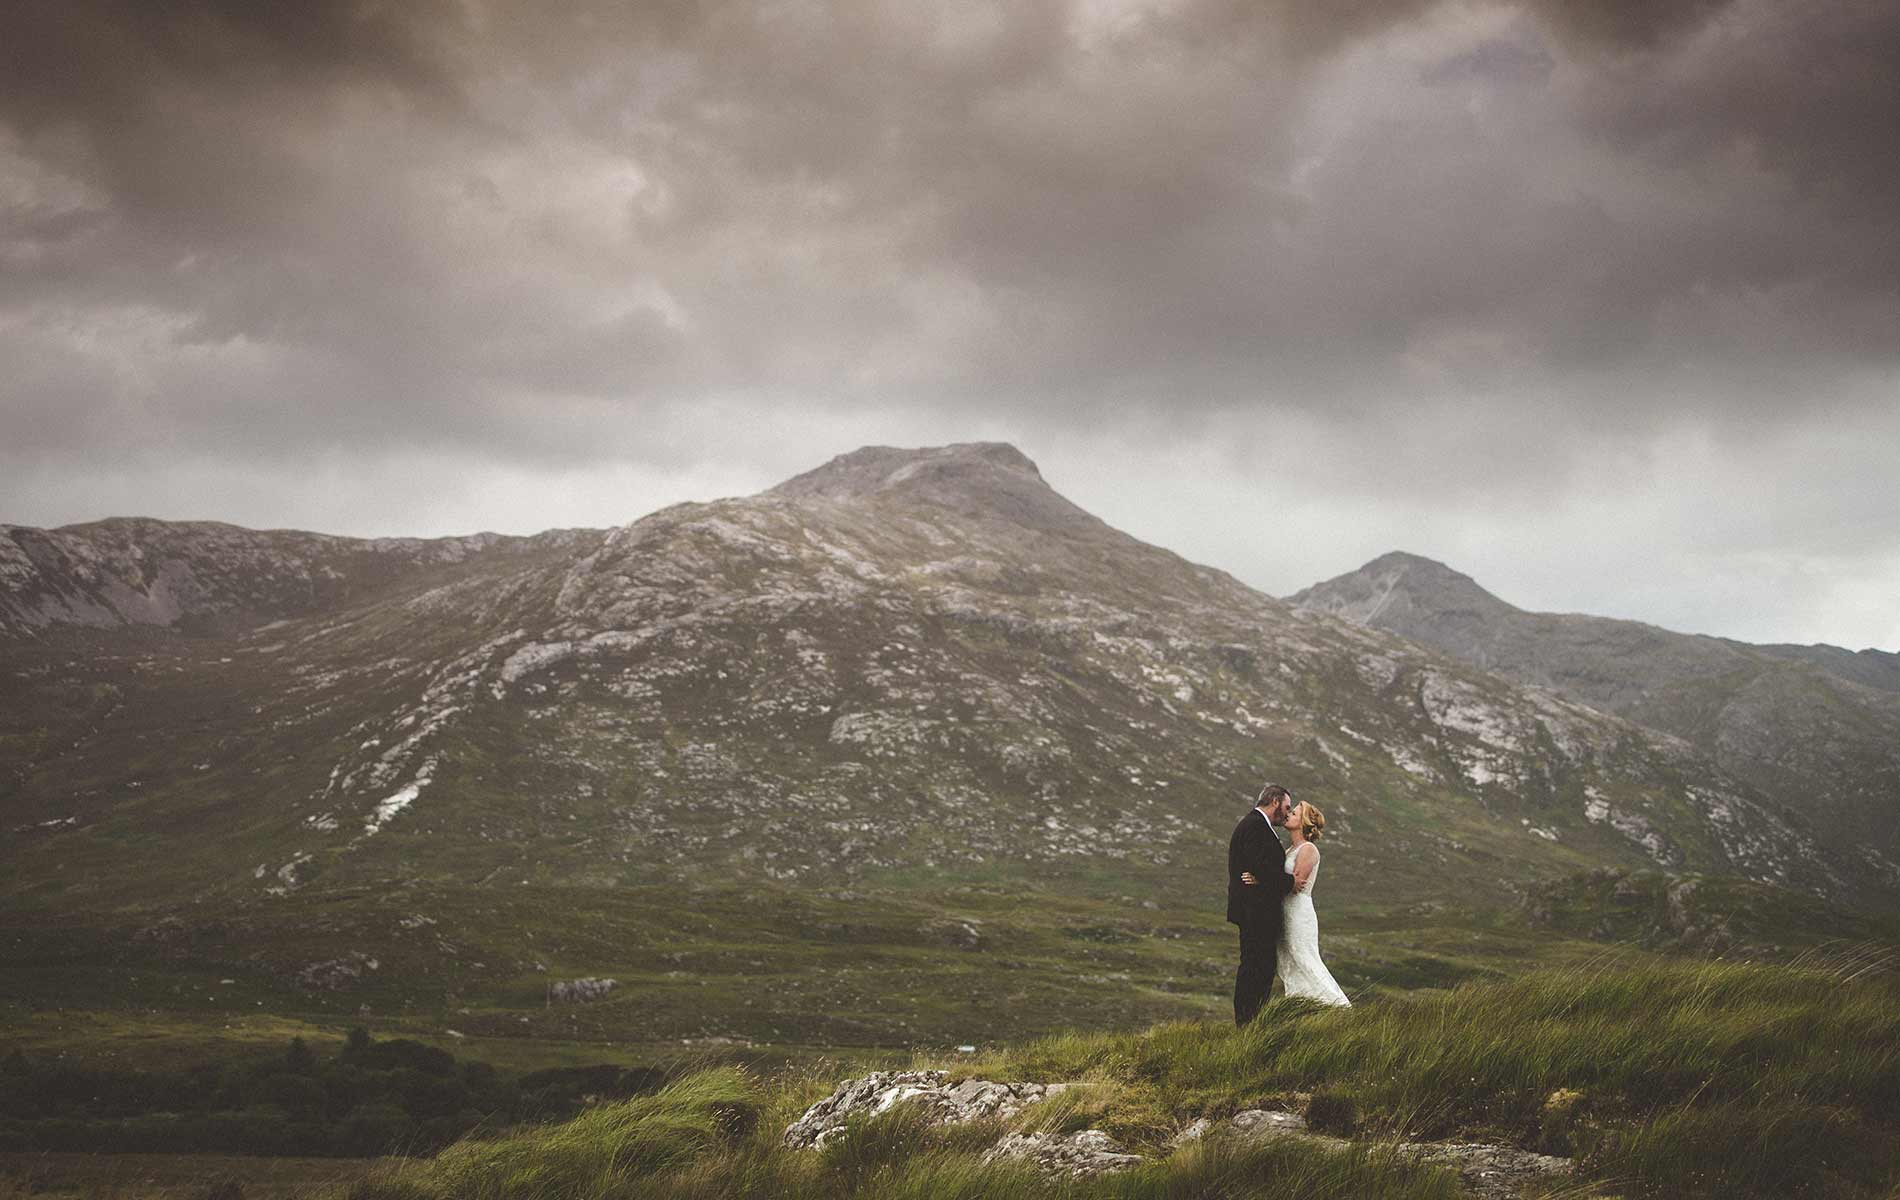 Connemara-Life-2018-Wedding-Bent-HERO.jpg